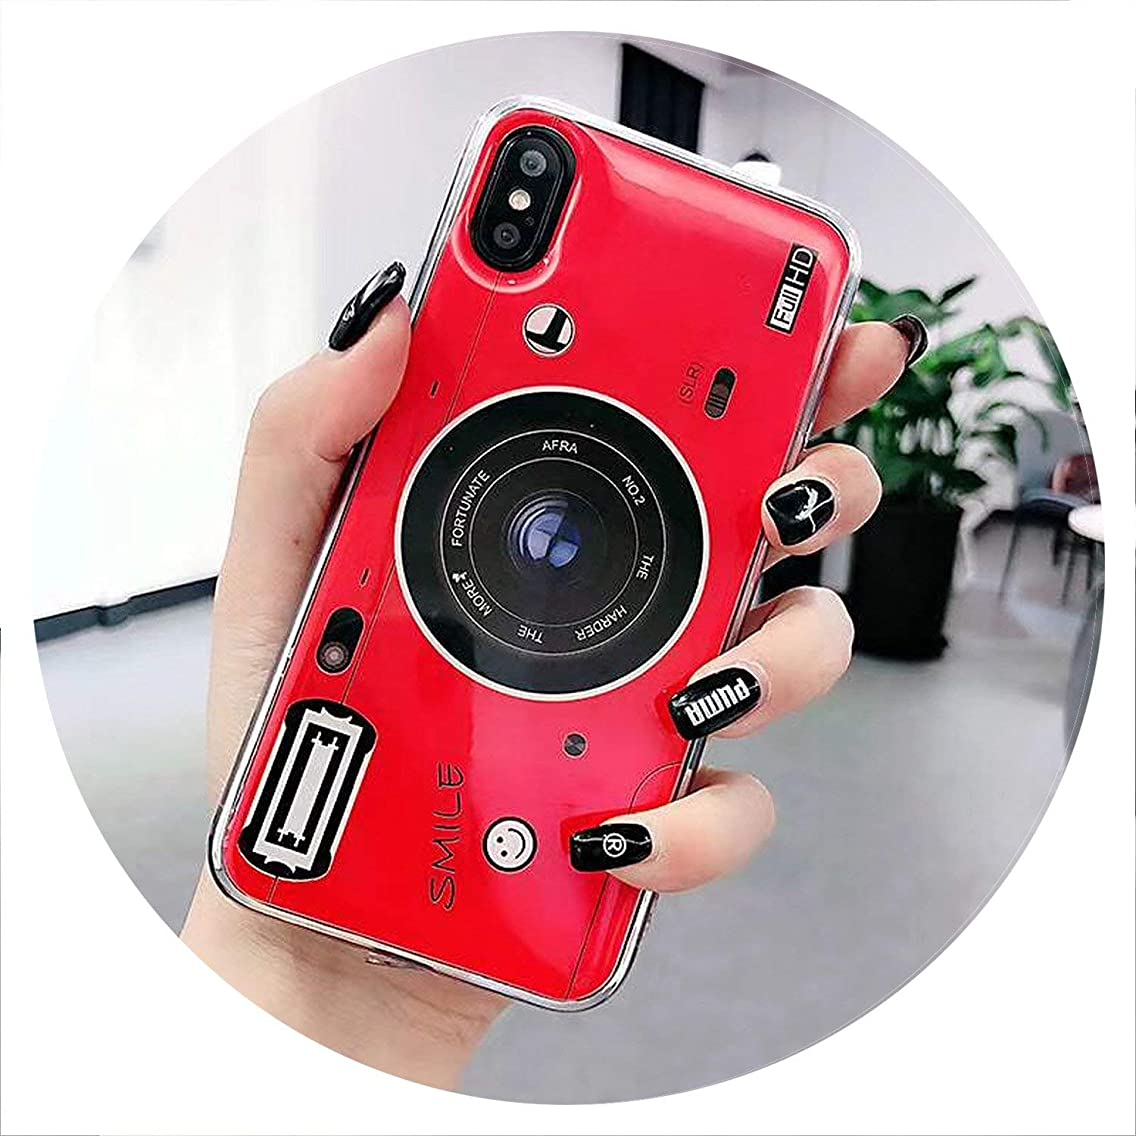 Old Styles Case for iPhone 8 5S 5C Vintage 3D Camera Soft Silicone TPU Cover for iPhone 6 6s 7 8 Plus XS Max XR 3D Phone Holder,Red,for iPhone 6 Plus,1 Case NO Holder